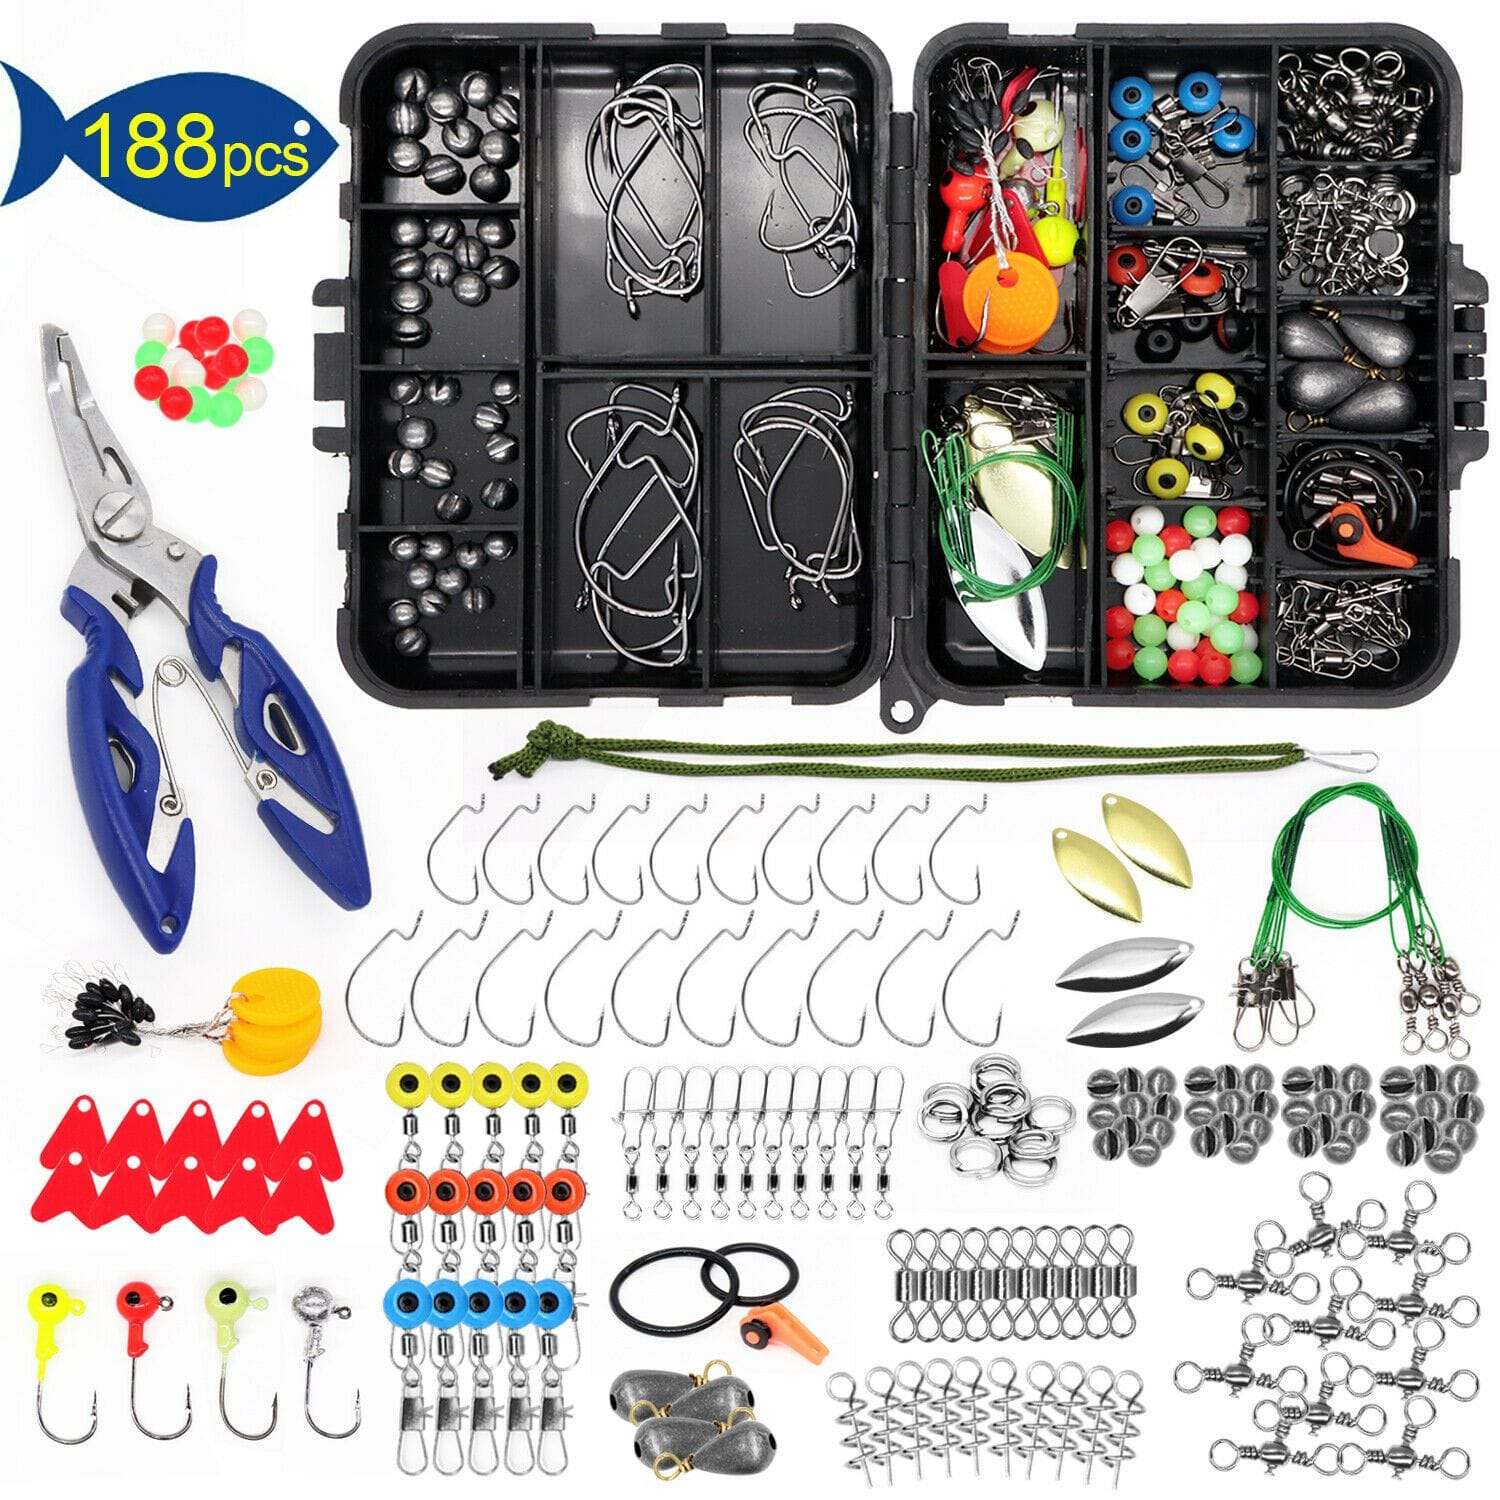 Otterk 188PC Fishing Accessories Kit set with Tackle Box